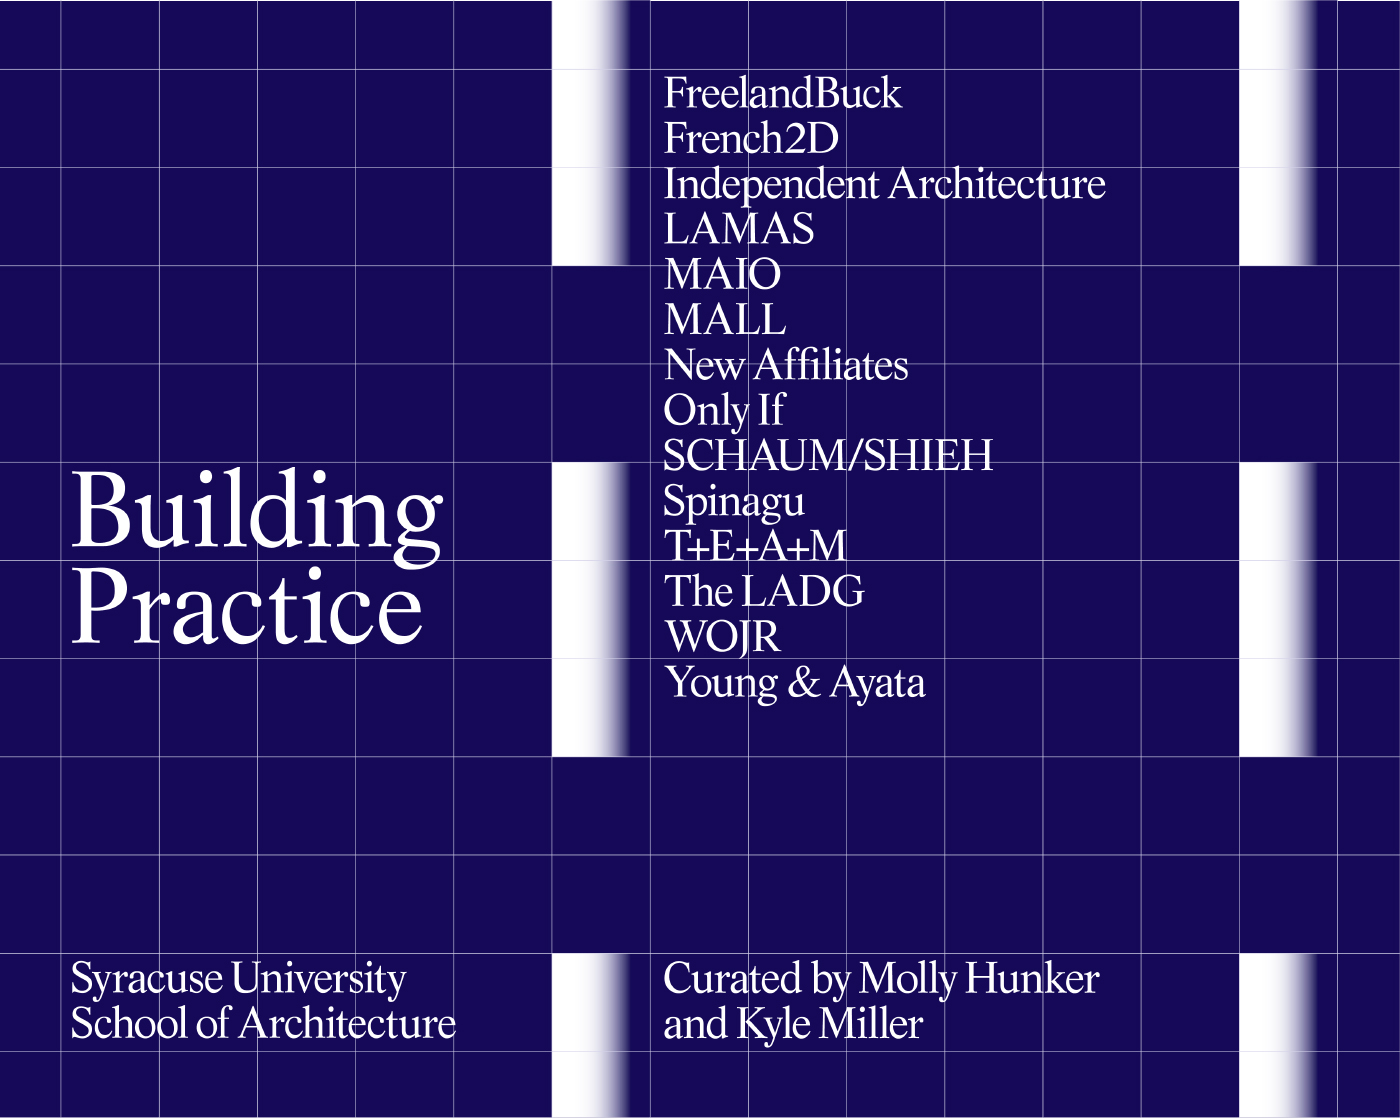 A poster that says Building Practice on a blue background